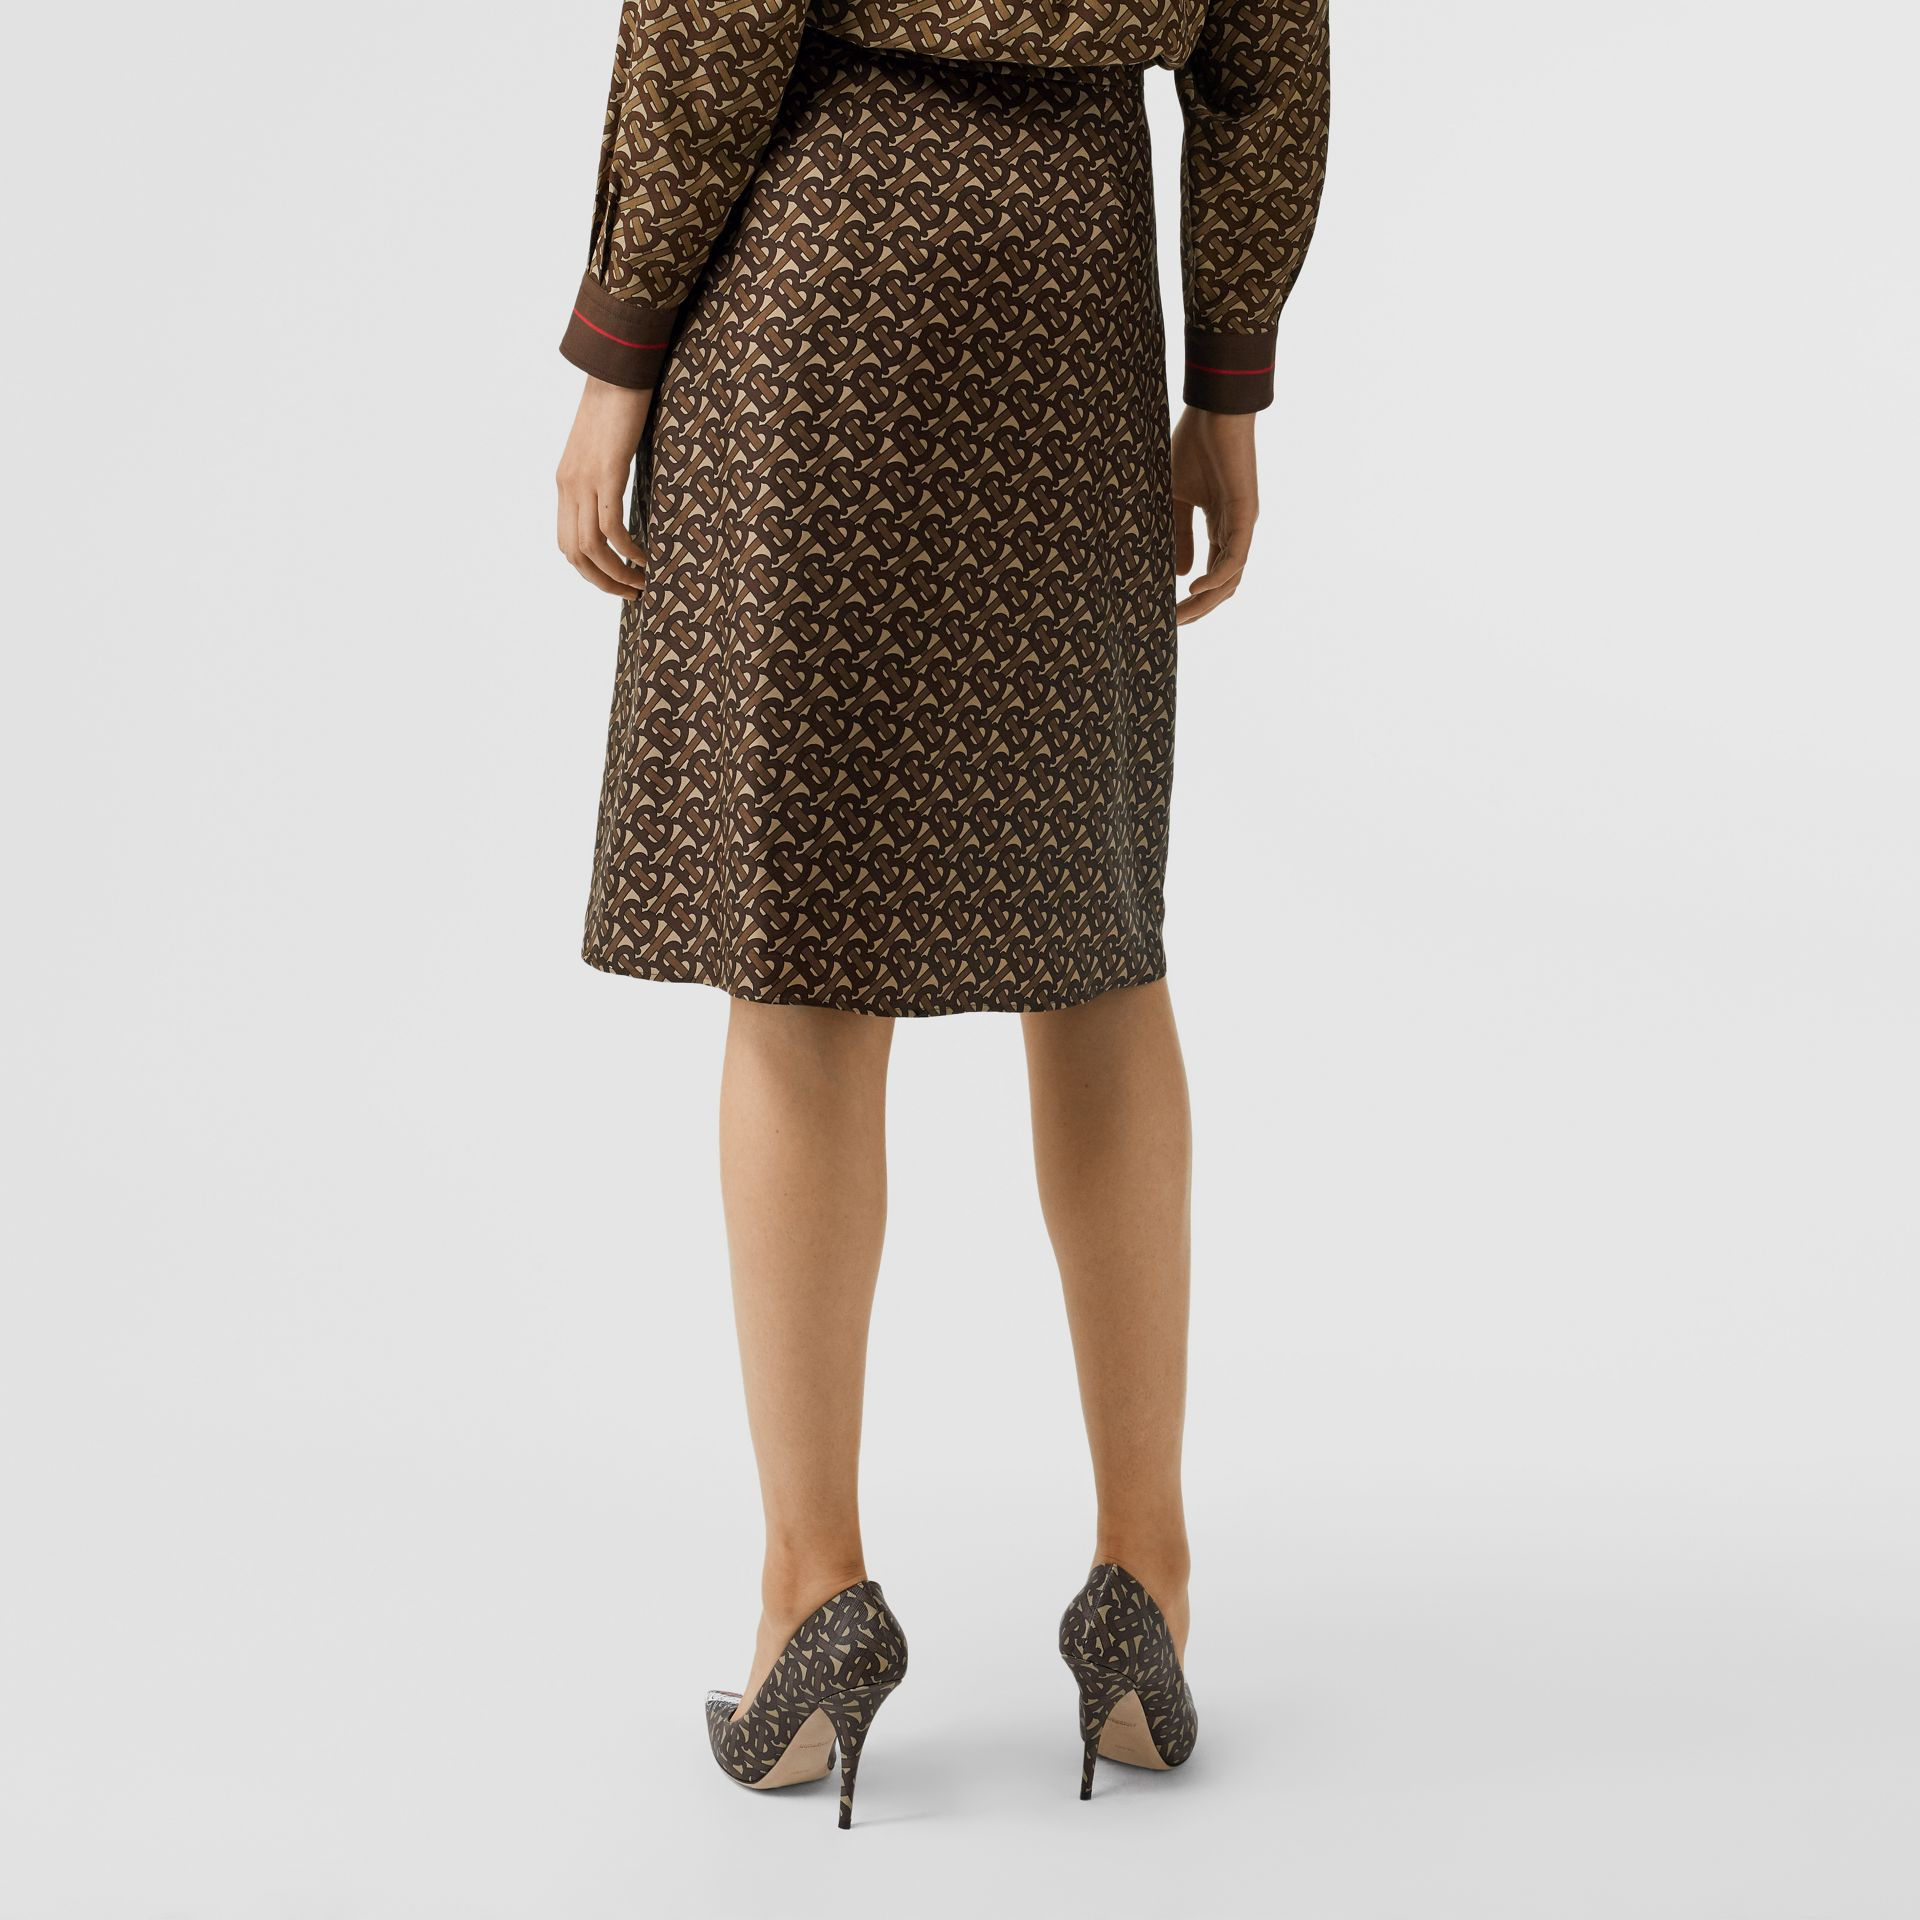 Monogram Stripe Print Silk Skirt in Bridle Brown - Women | Burberry United States - gallery image 2